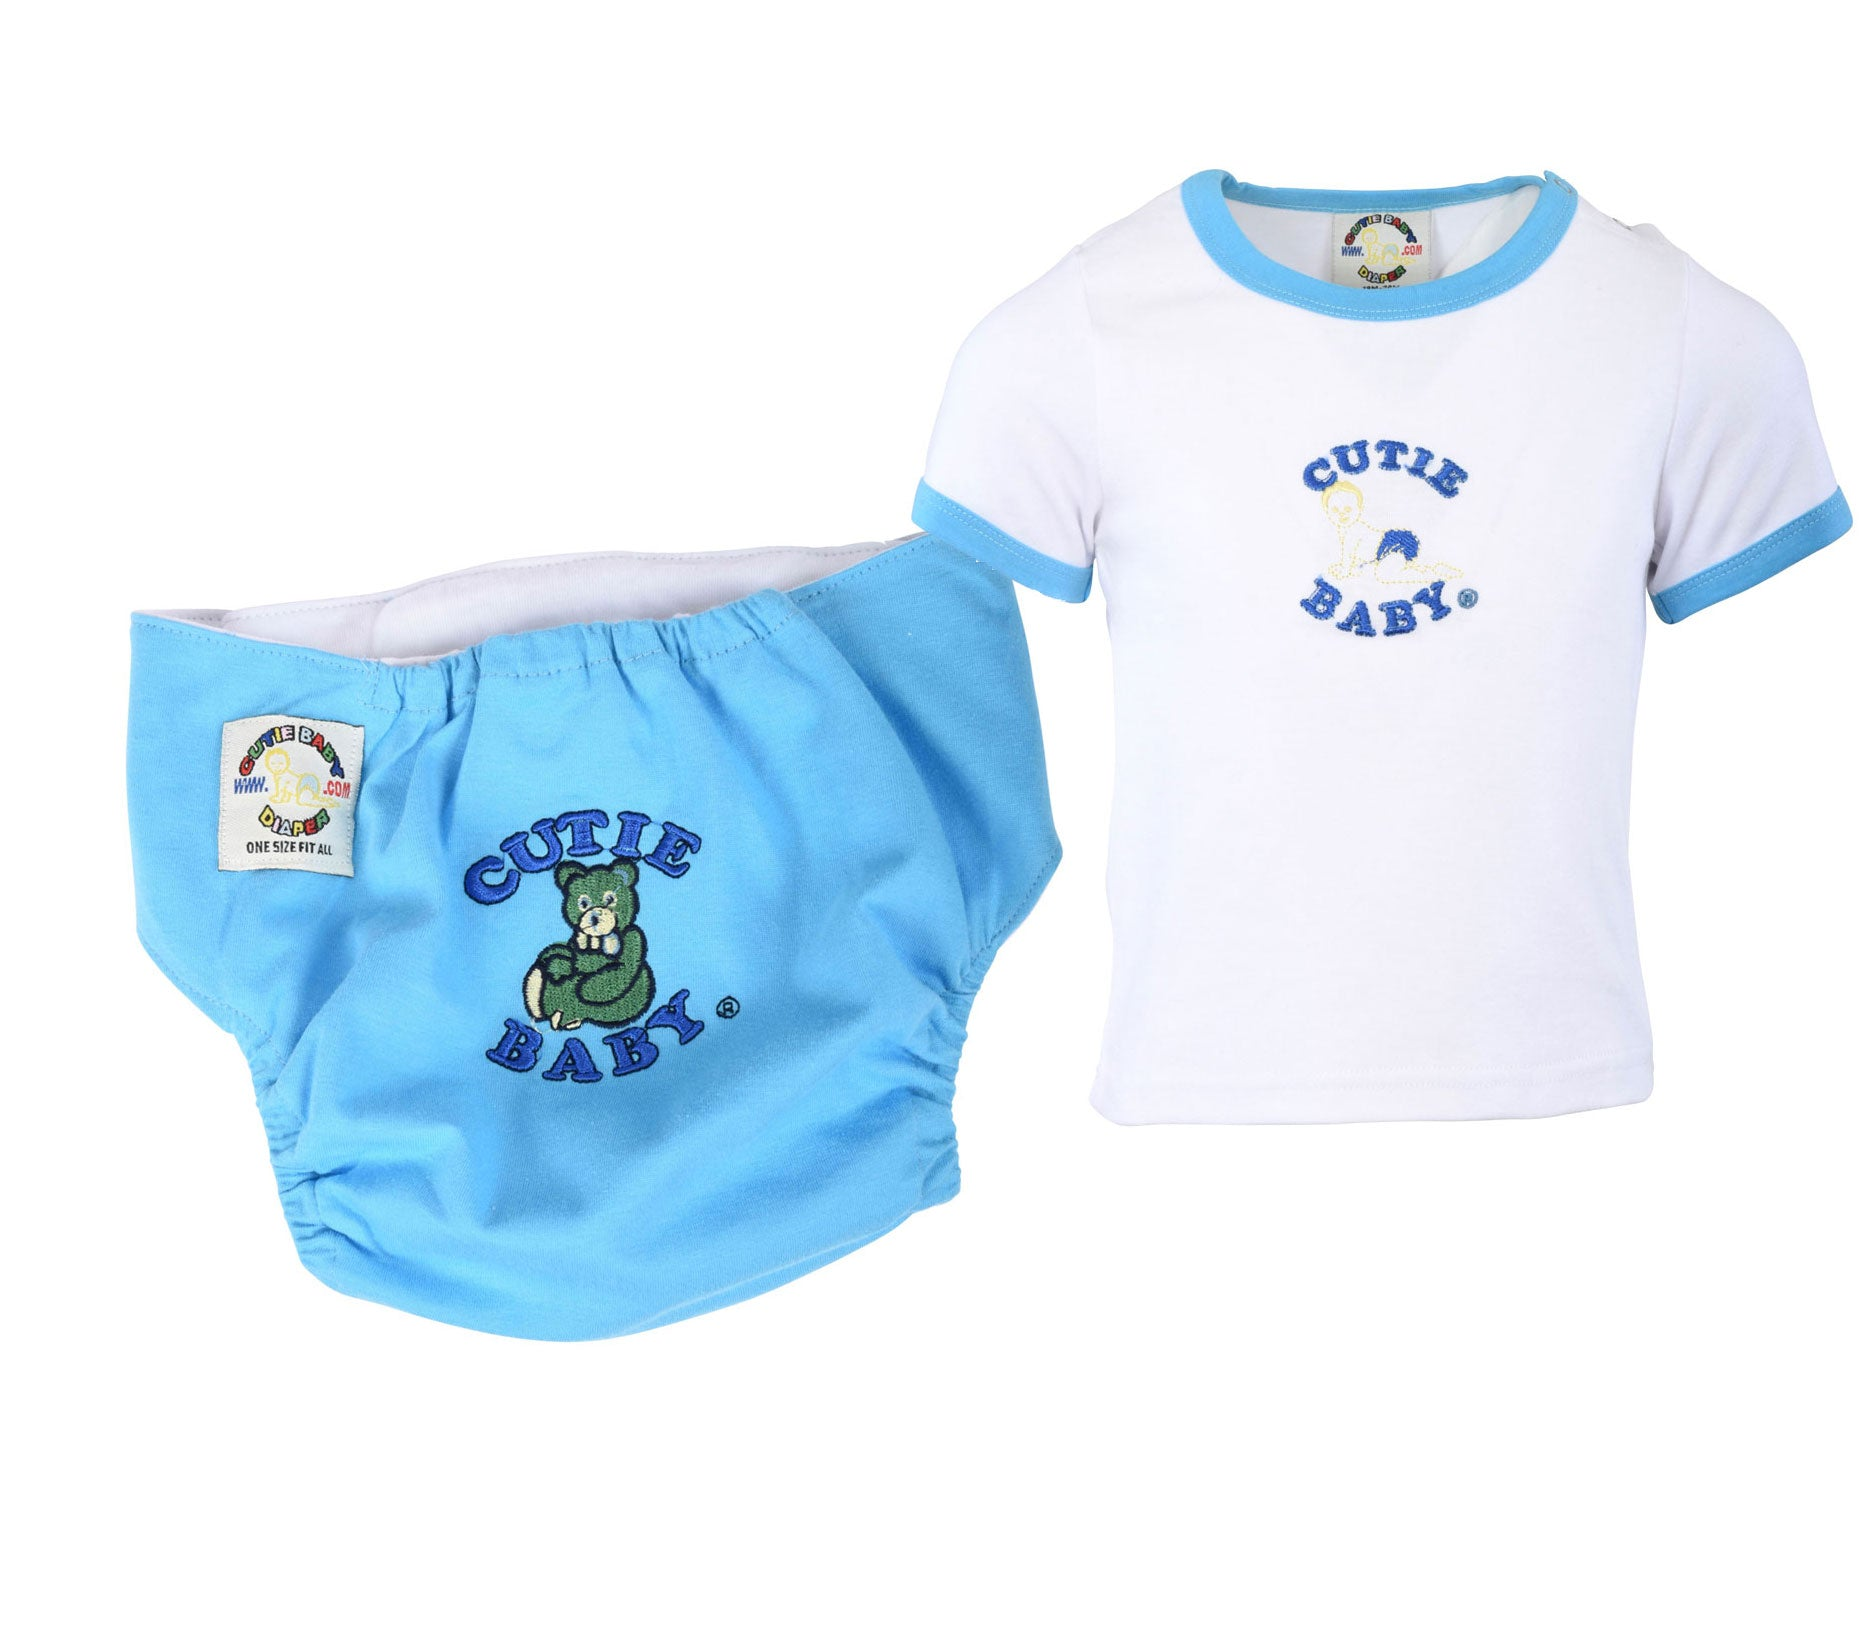 Buy 3 Diapers Get 1 Free Diaper & 1 Free Matching T-shirt